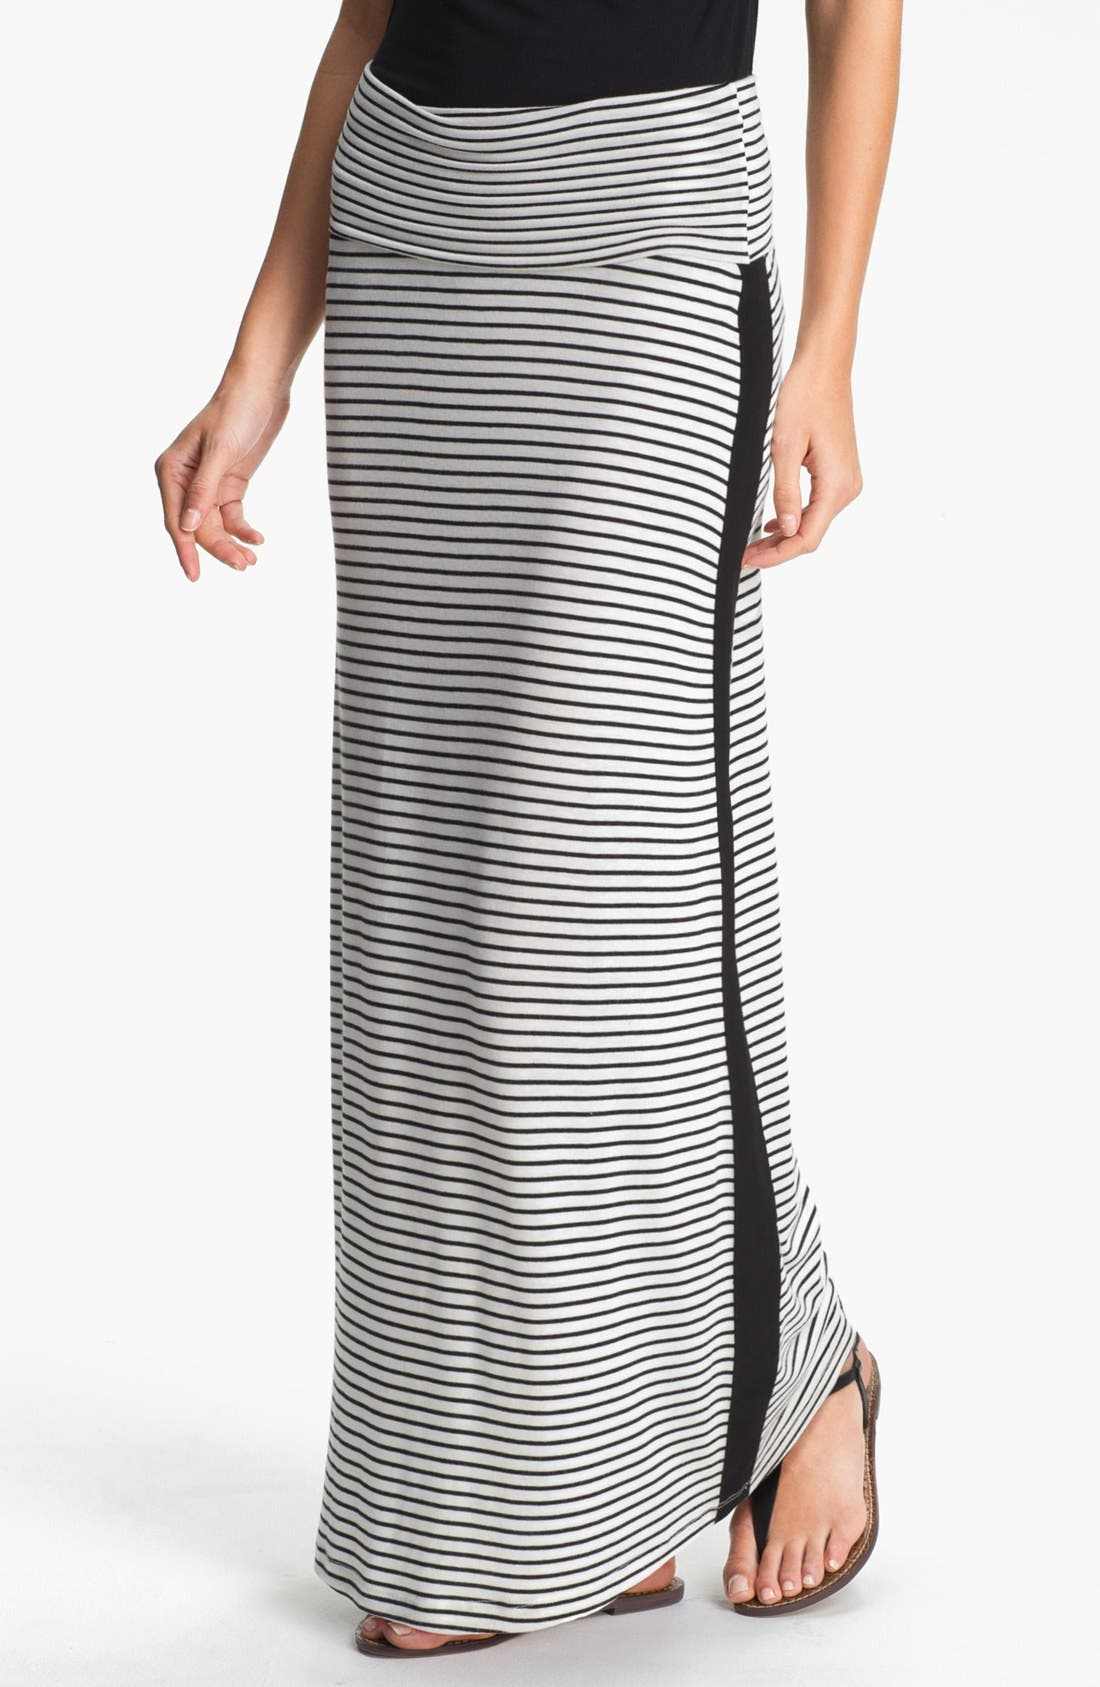 Alternate Image 1 Selected - Everleigh Tuxedo Stripe Maxi Skirt (Petite)